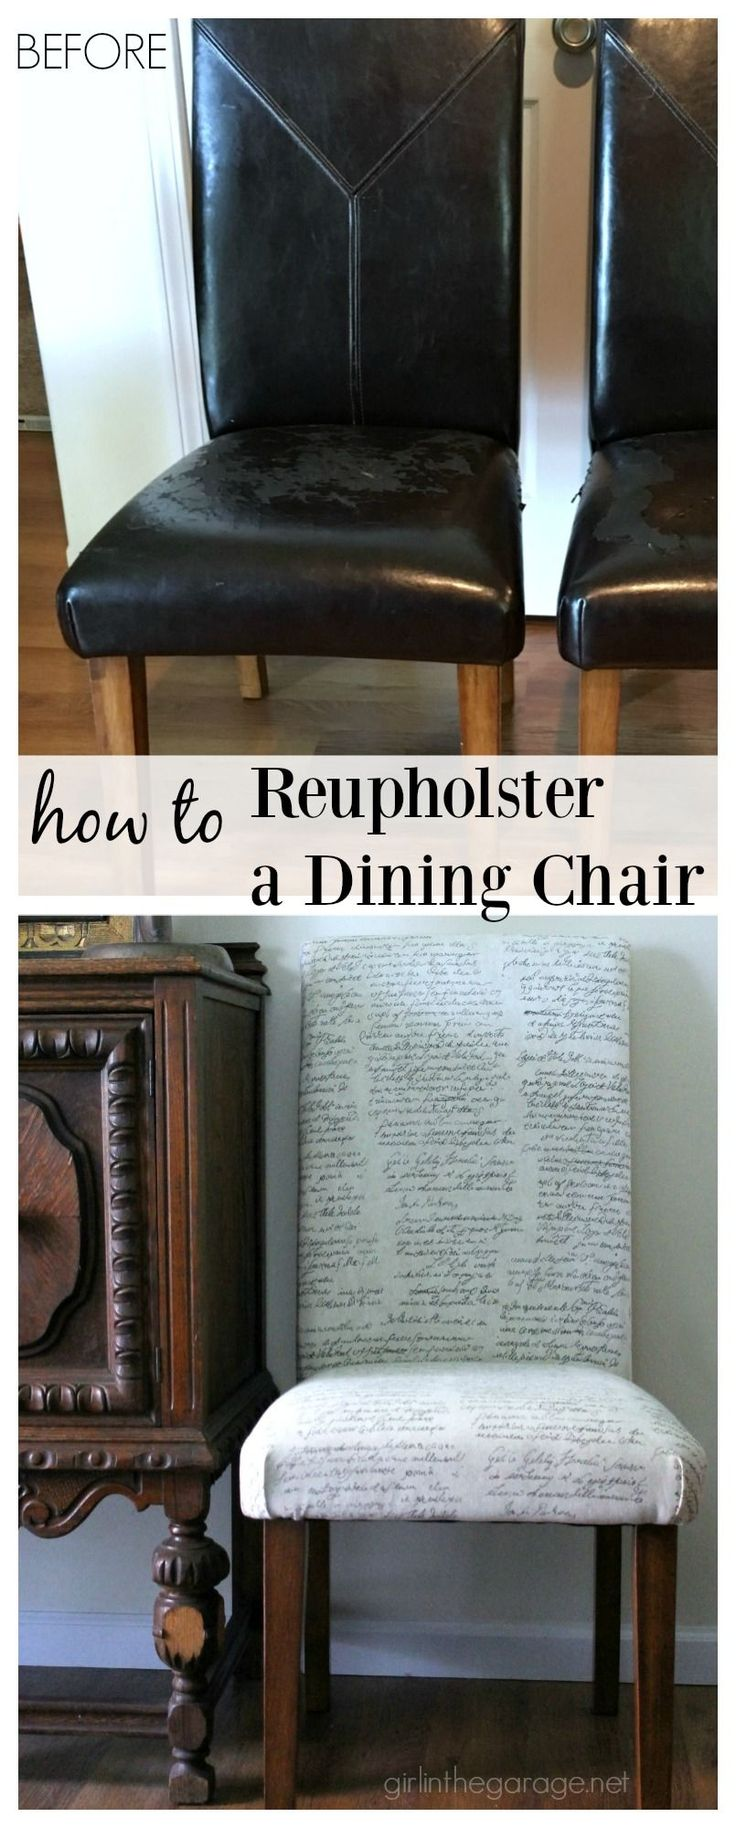 Reupholster DIY Dining Chair Makeover - Girl in the Garage                                                                                                                                                                                 More